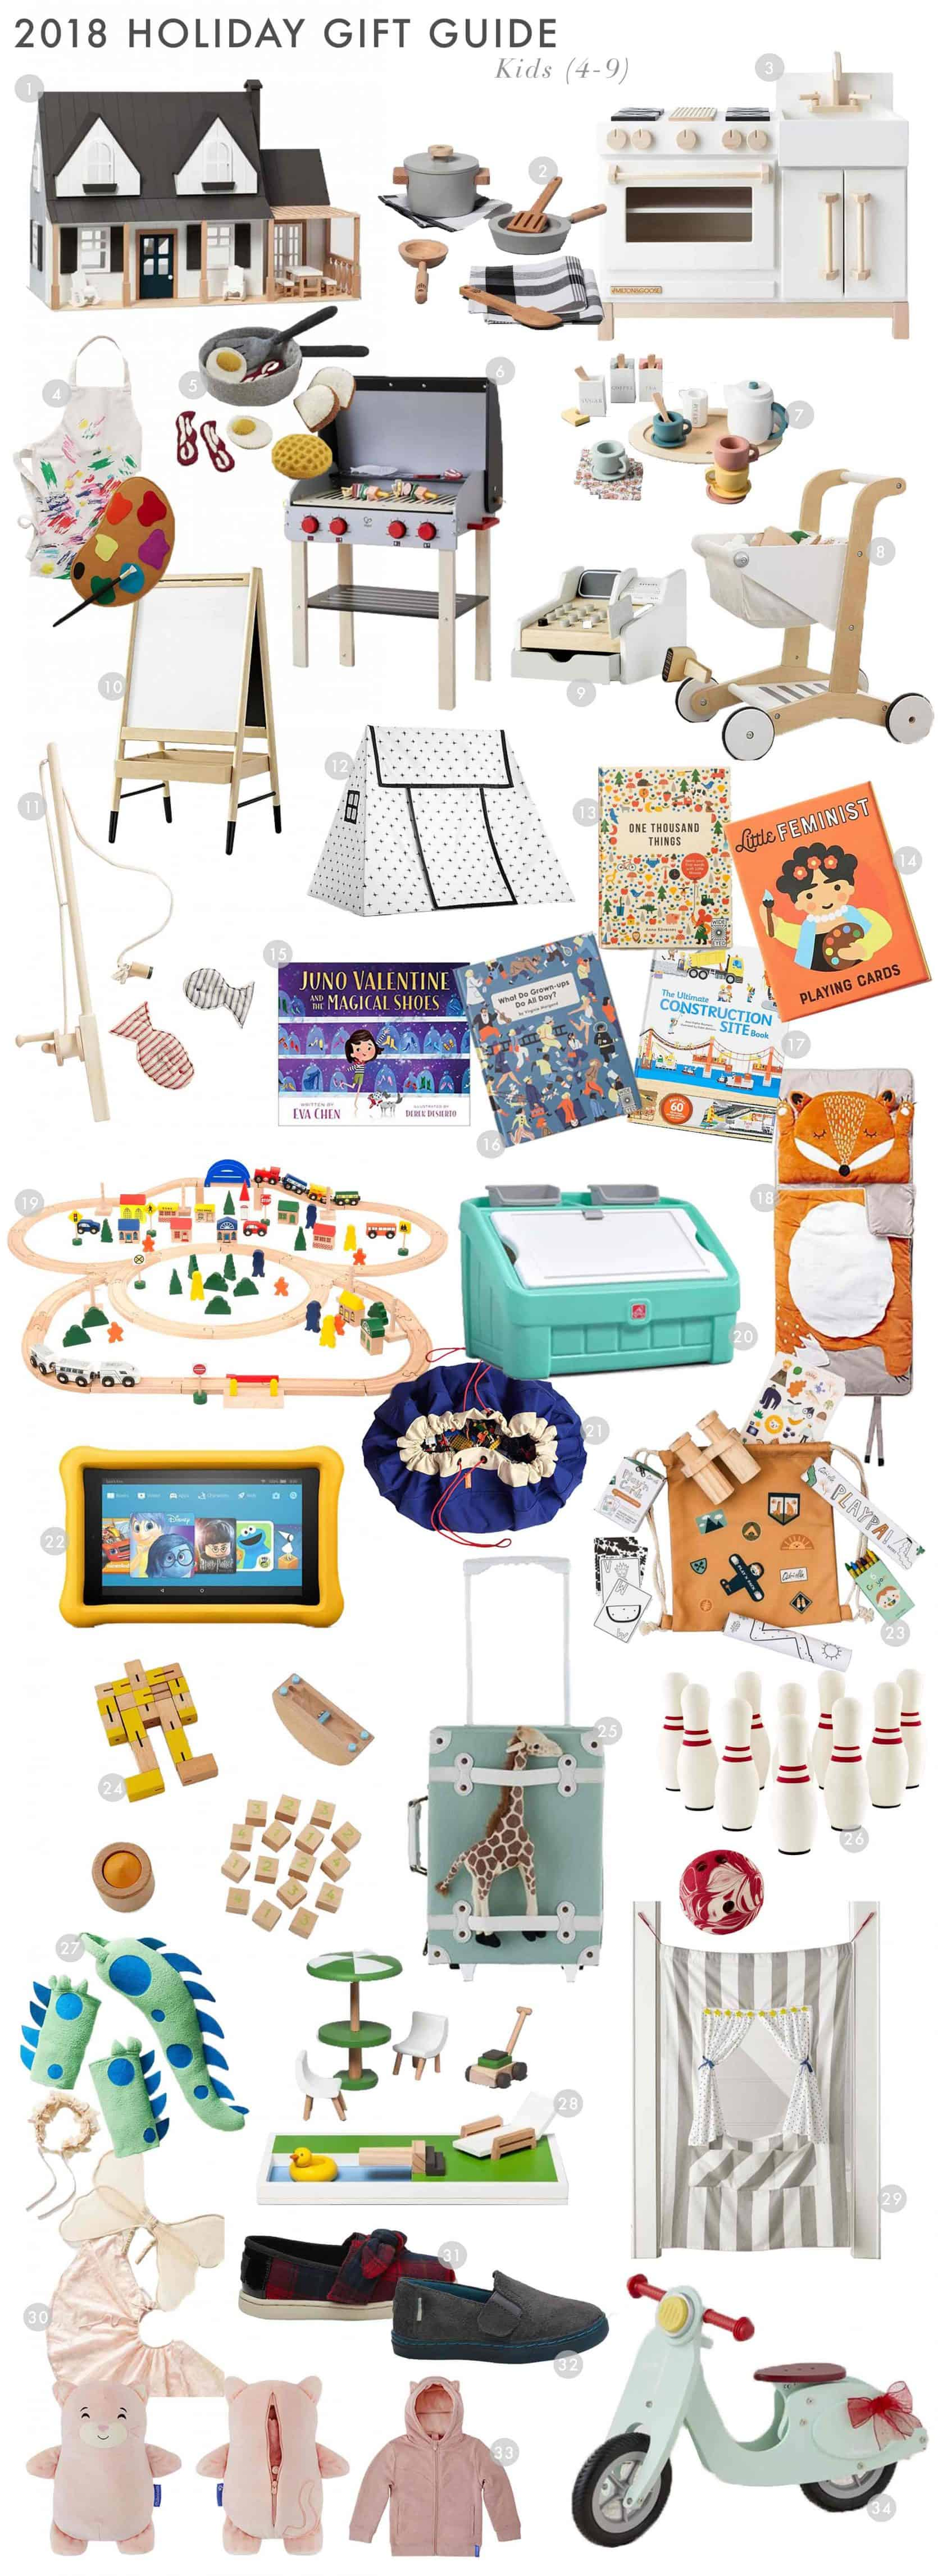 Emily Henderson Gift Guide 2018 Holiday Christmas Kids And Teens Kids